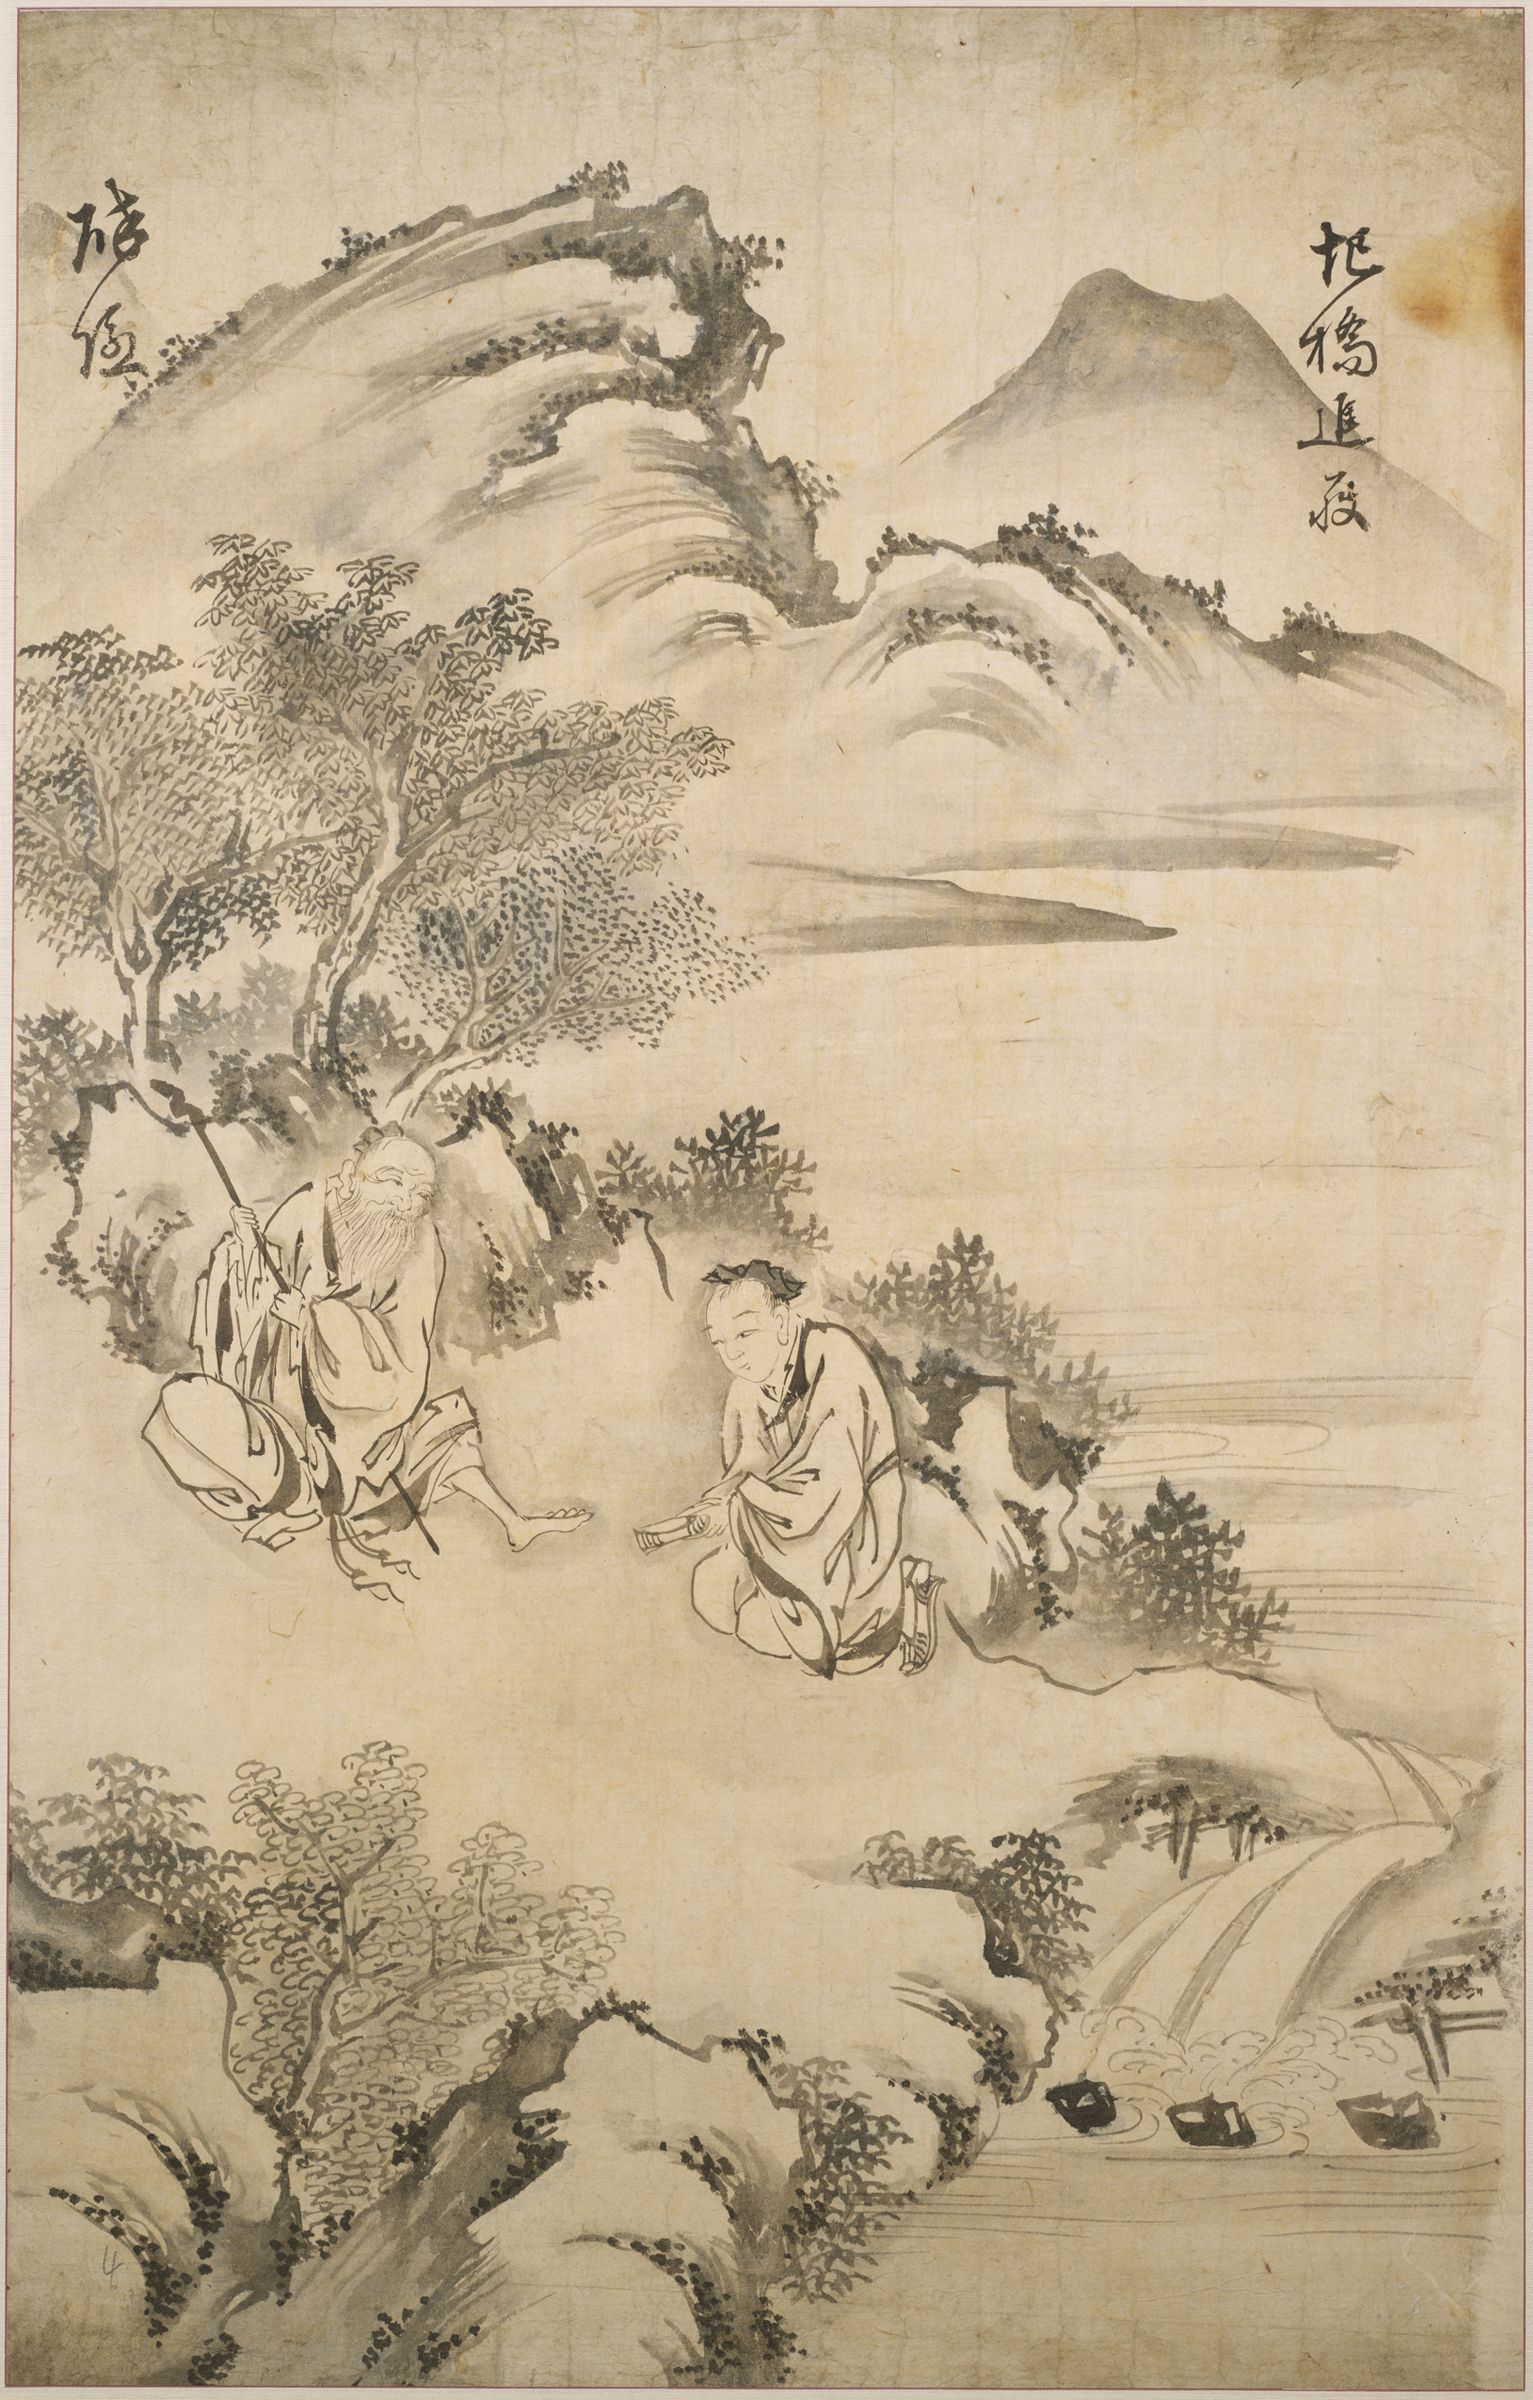 Former Prime Minister Zhang Liang (D. 189 Bc) Presenting The Straw Sandal To The Sage At Yi Bridge